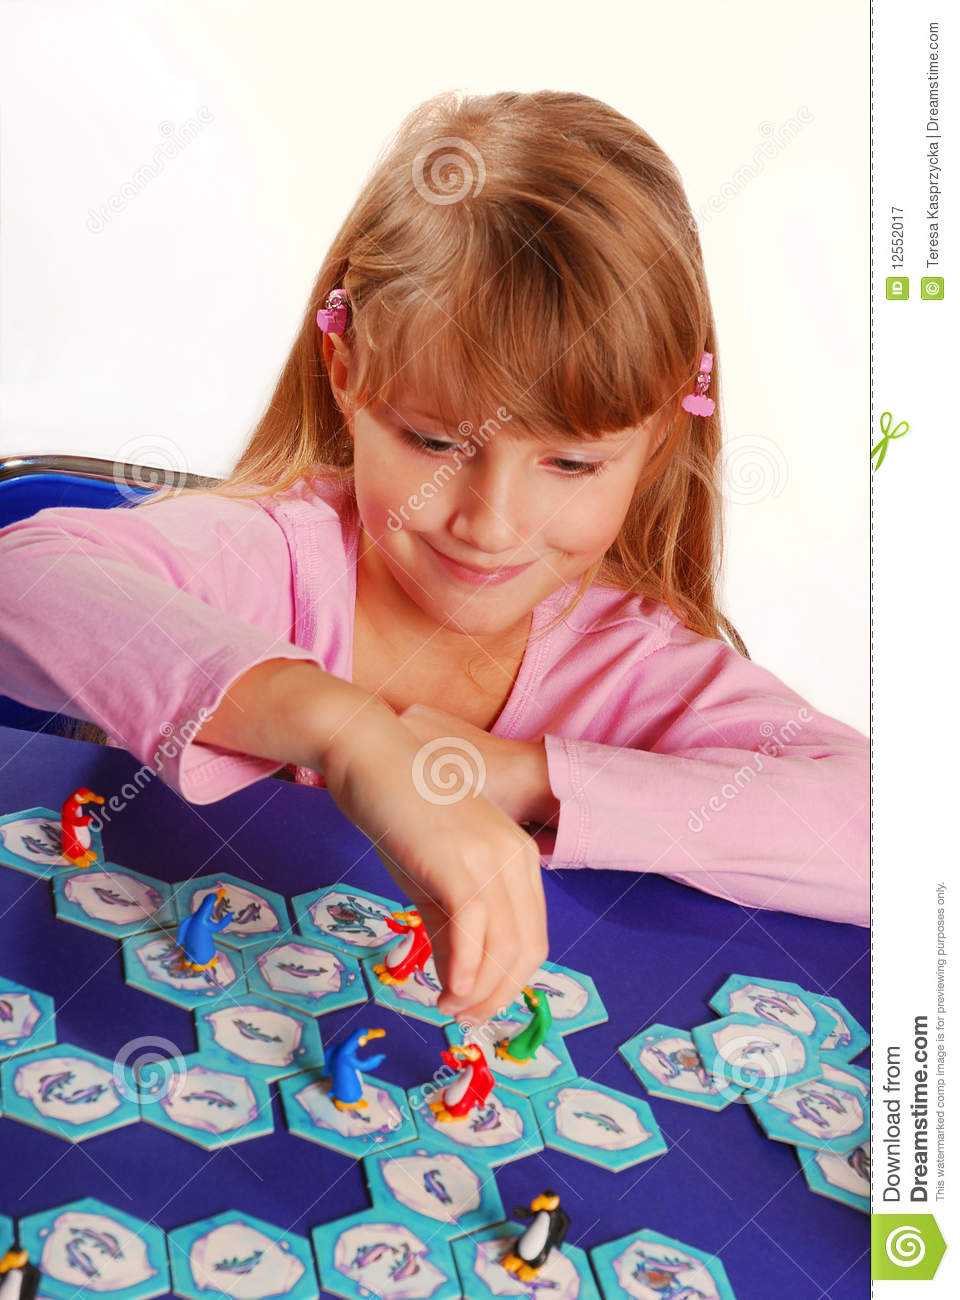 little girl playing the board game royalty free stock photography image 12552017. Black Bedroom Furniture Sets. Home Design Ideas